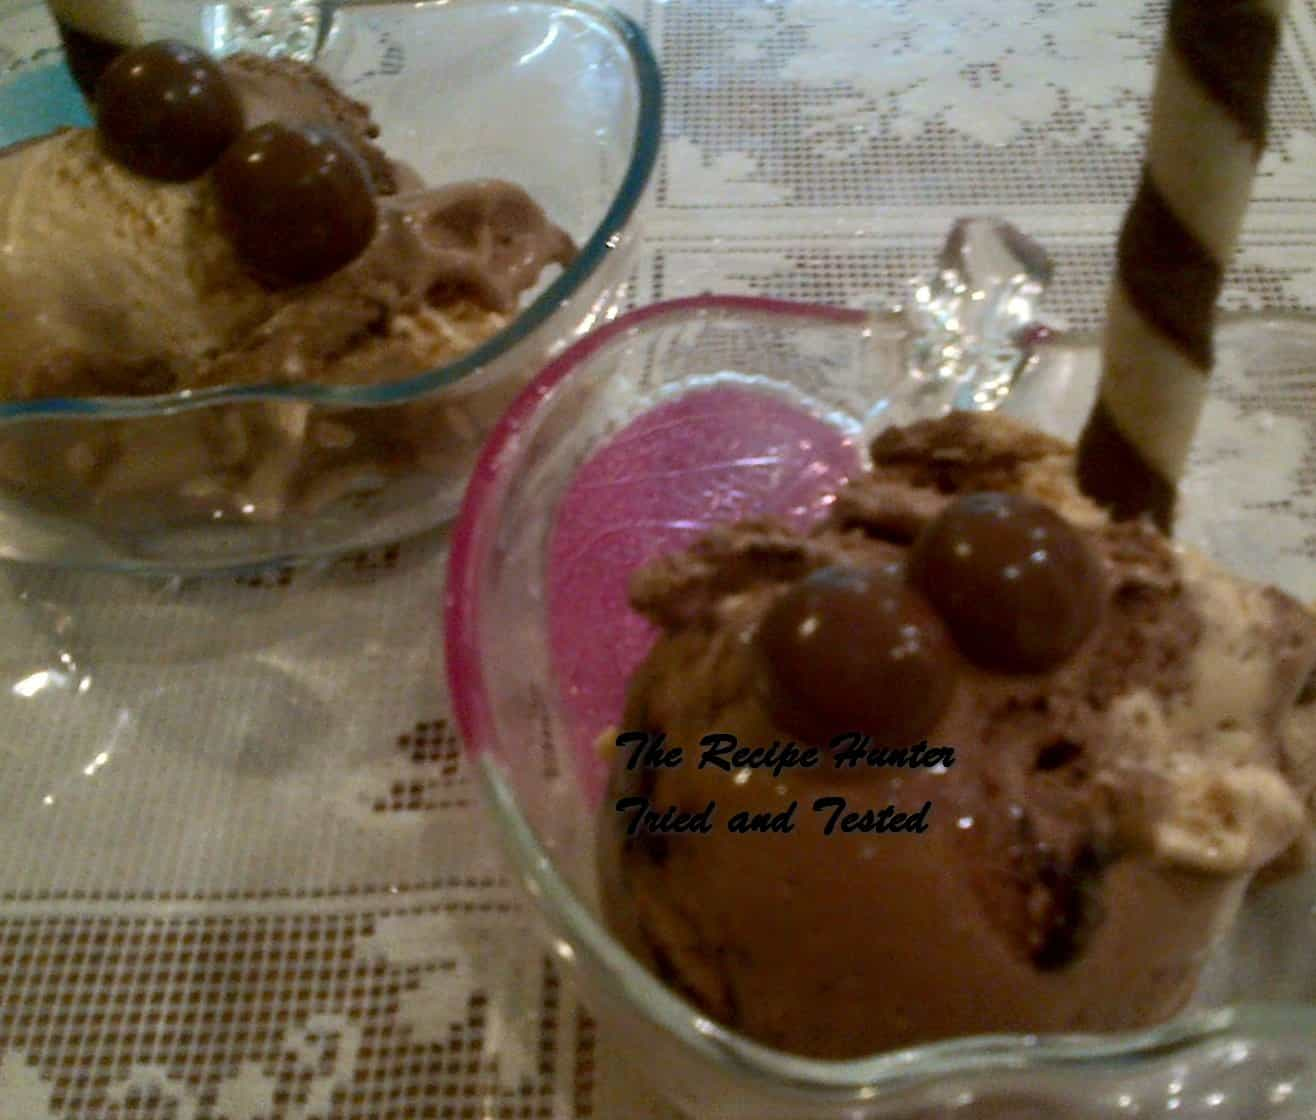 trh-nazleys-easy-peasy-delicious-dessert